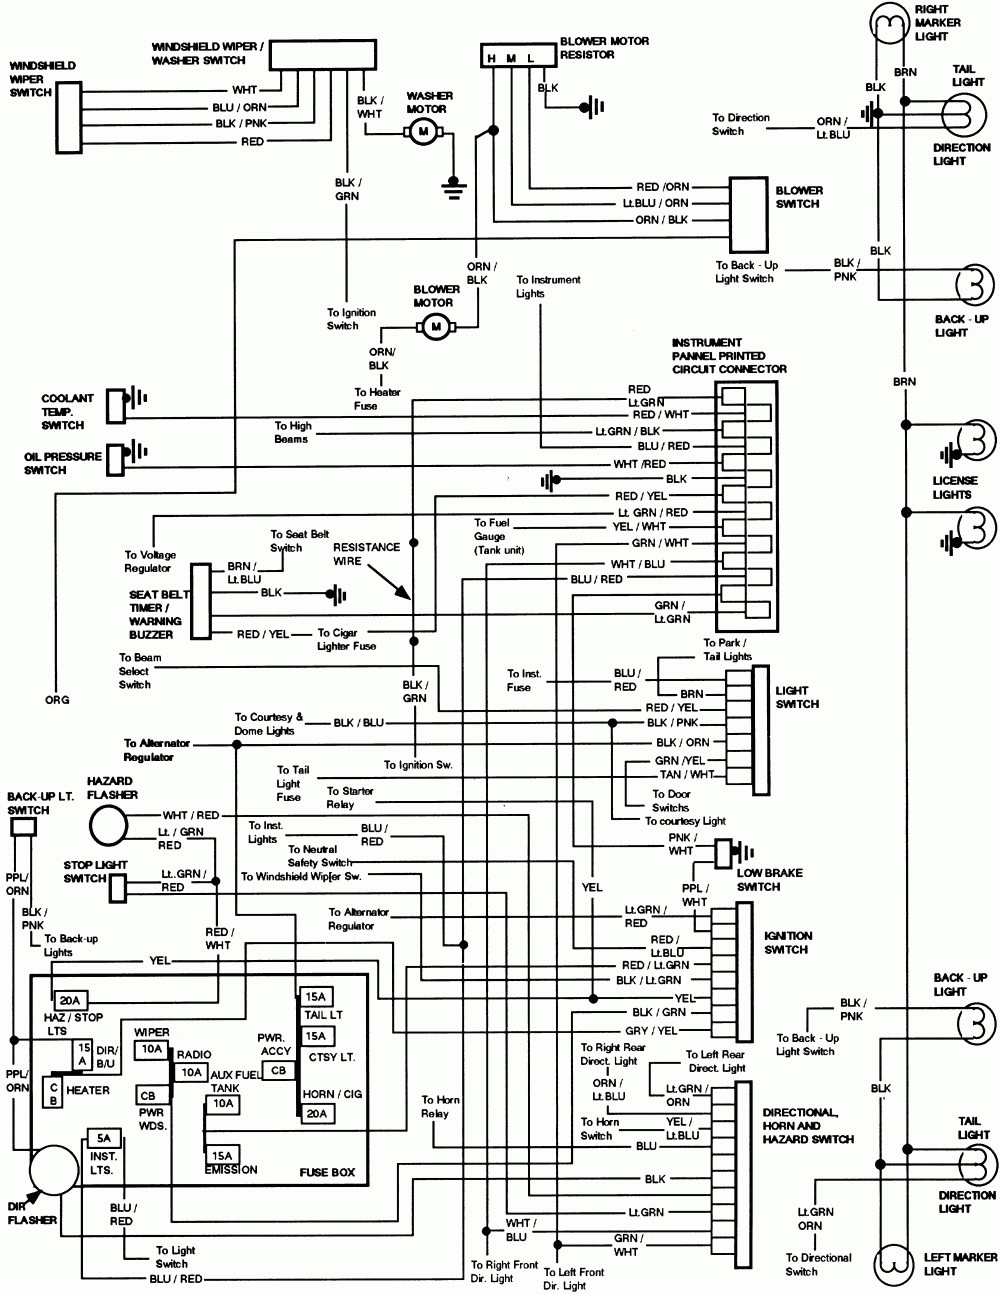 [SCHEMATICS_48IU]  5 0 Wiring Diagram | Wiring Diagram | 1986 Ford F 150 Headlight Wiring |  | Wiring Diagram - AutoScout24